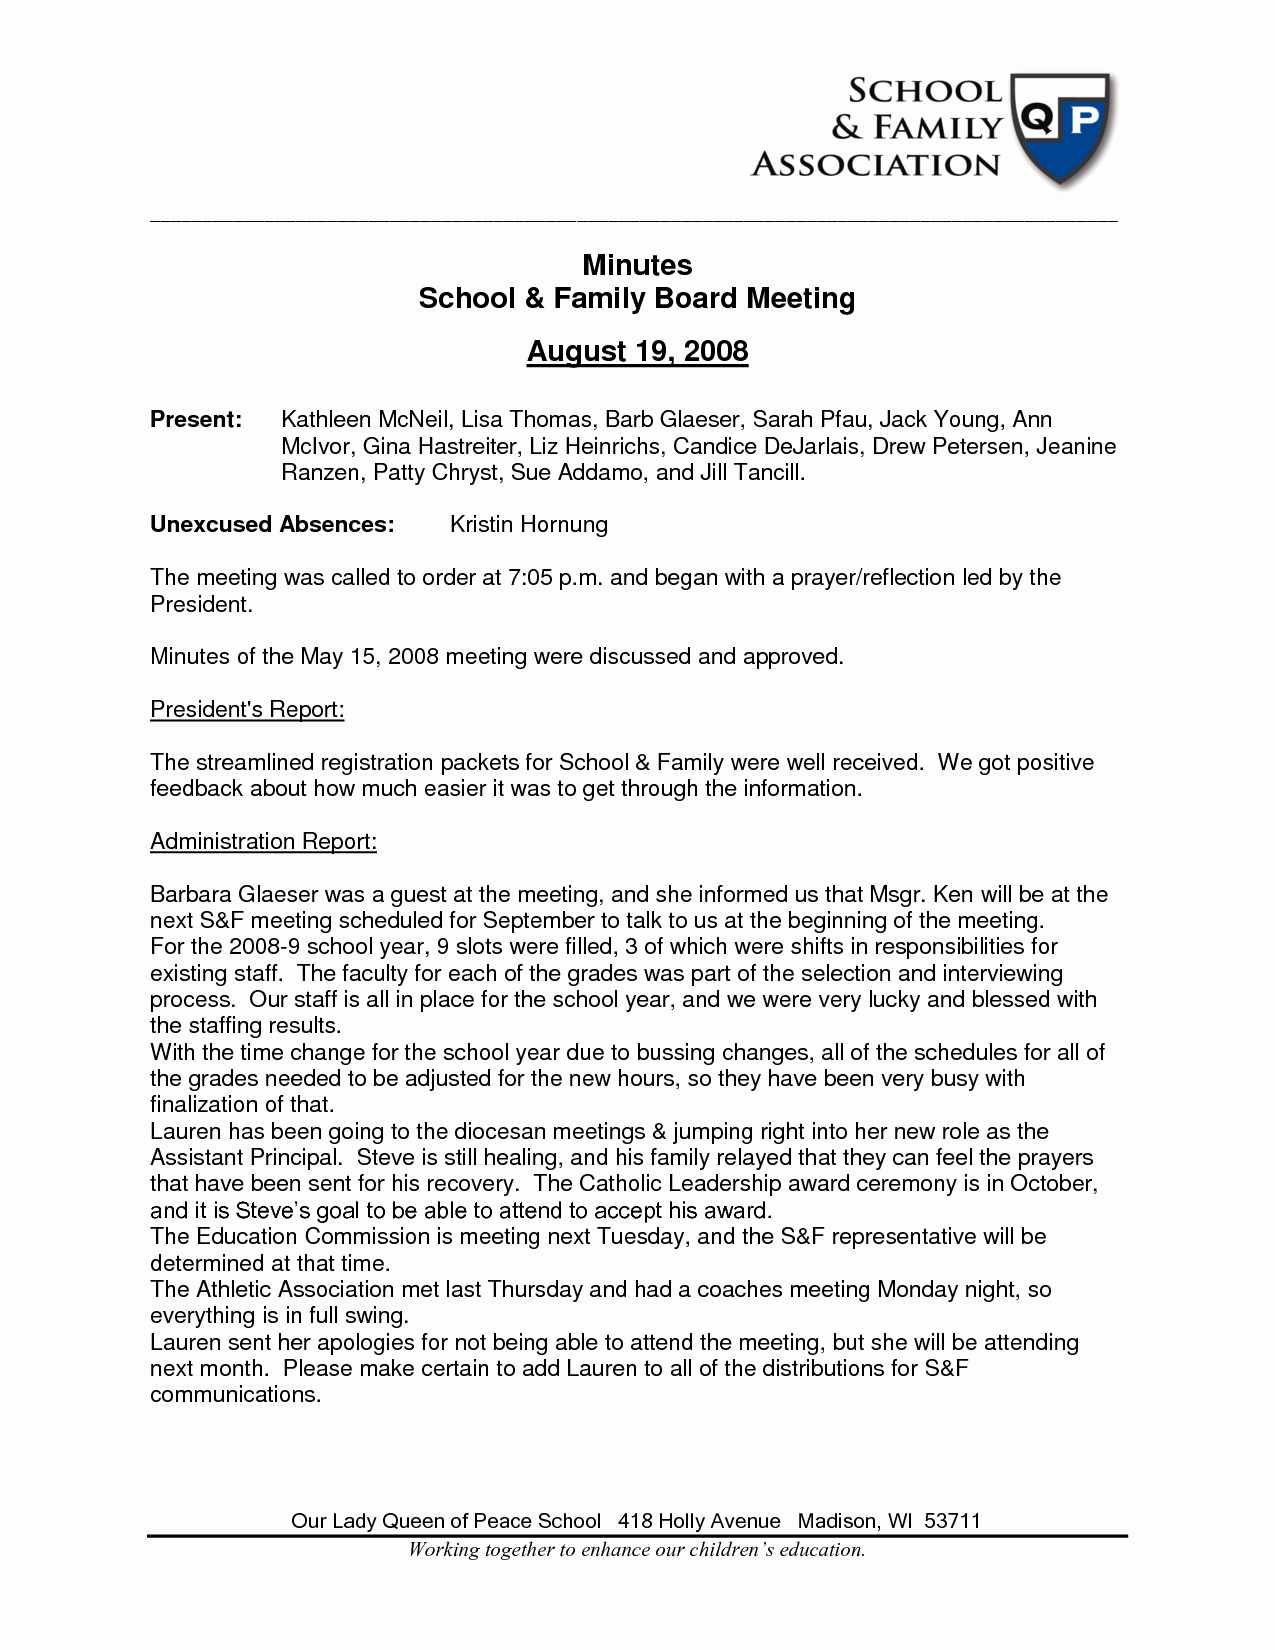 Minutes Template Doc